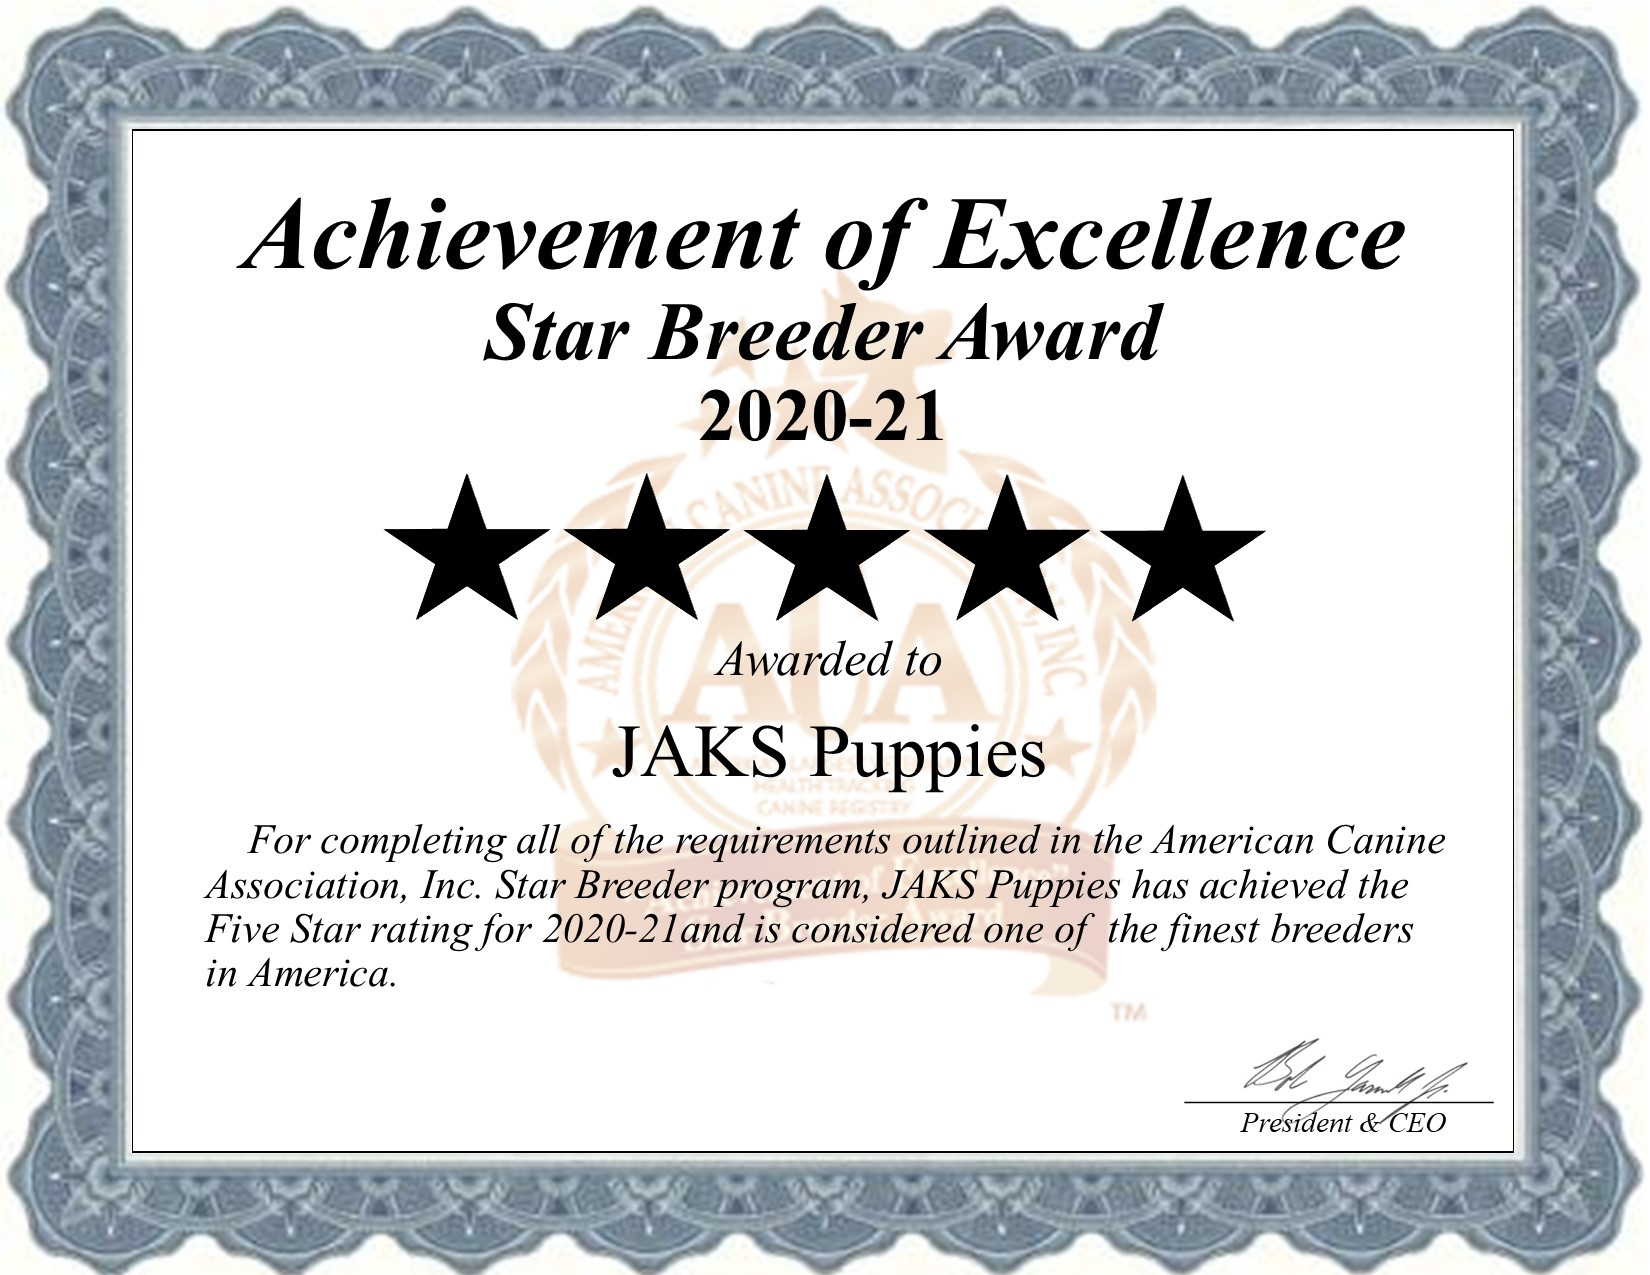 JAKS, Puppies, dog, distributor, broker, star, certificate, JAKS-Puppies, Britt Iowa, Iowa, puppy, dog, kennels, mill, puppymill, usda, 5-star, aca, ica, registered, Yorkshite, 42-B-0271